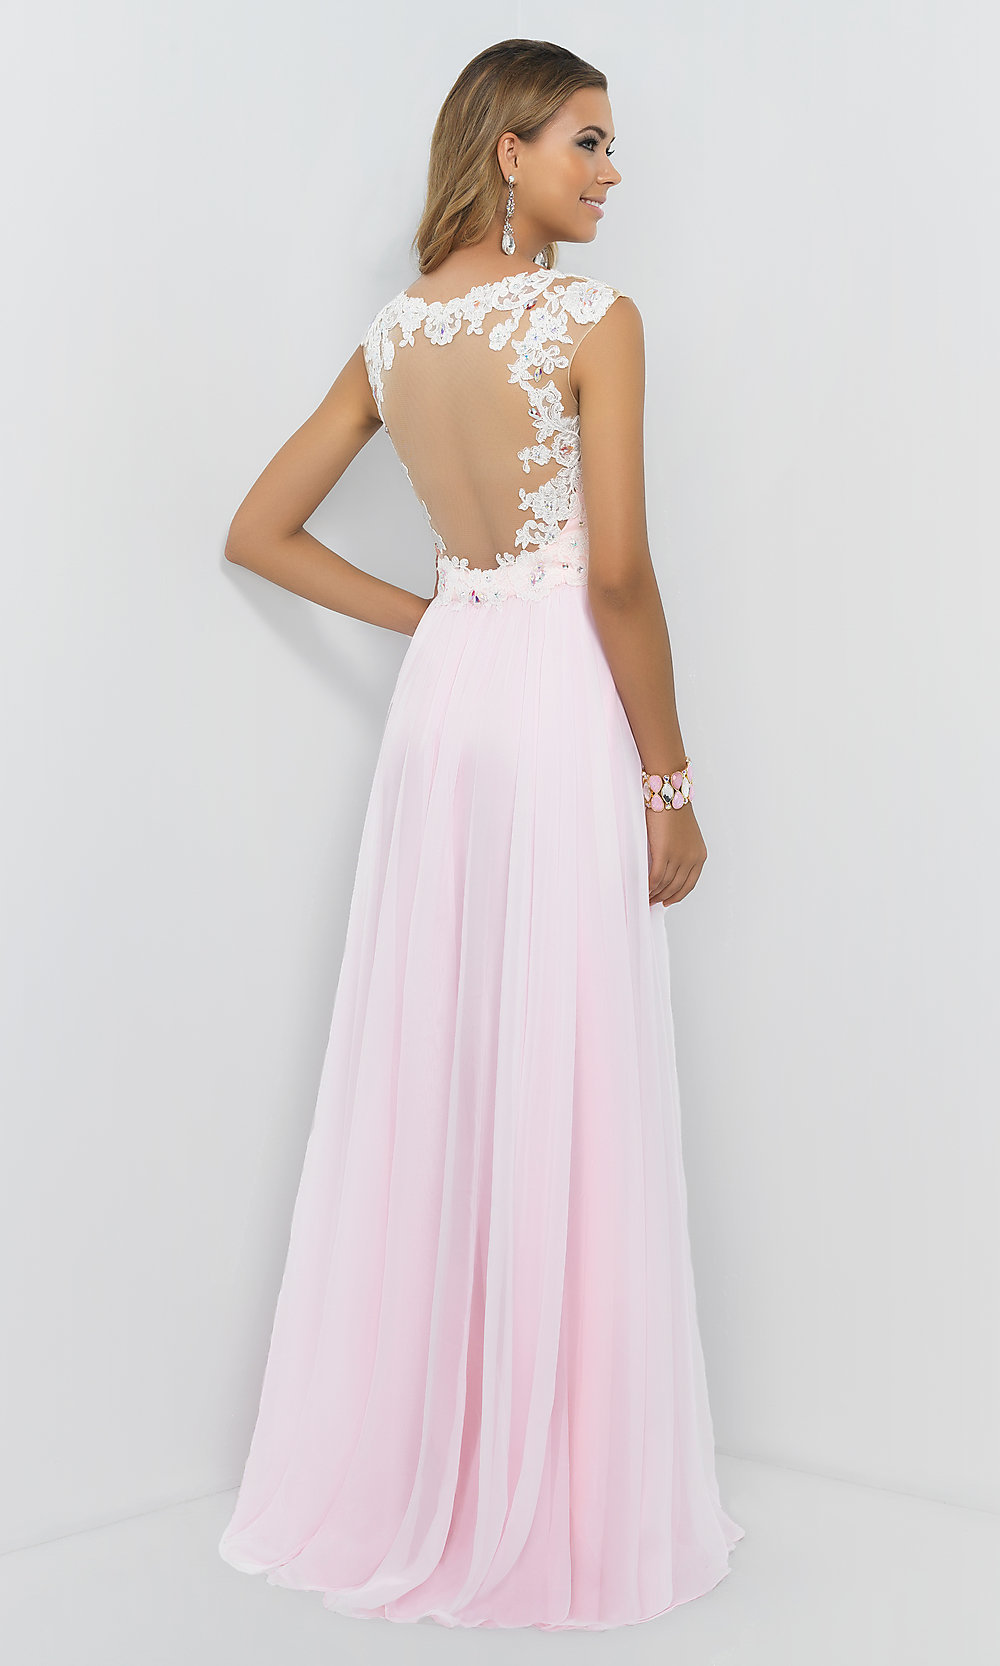 Cap Sleeve Pink Prom Ball Gown 9986